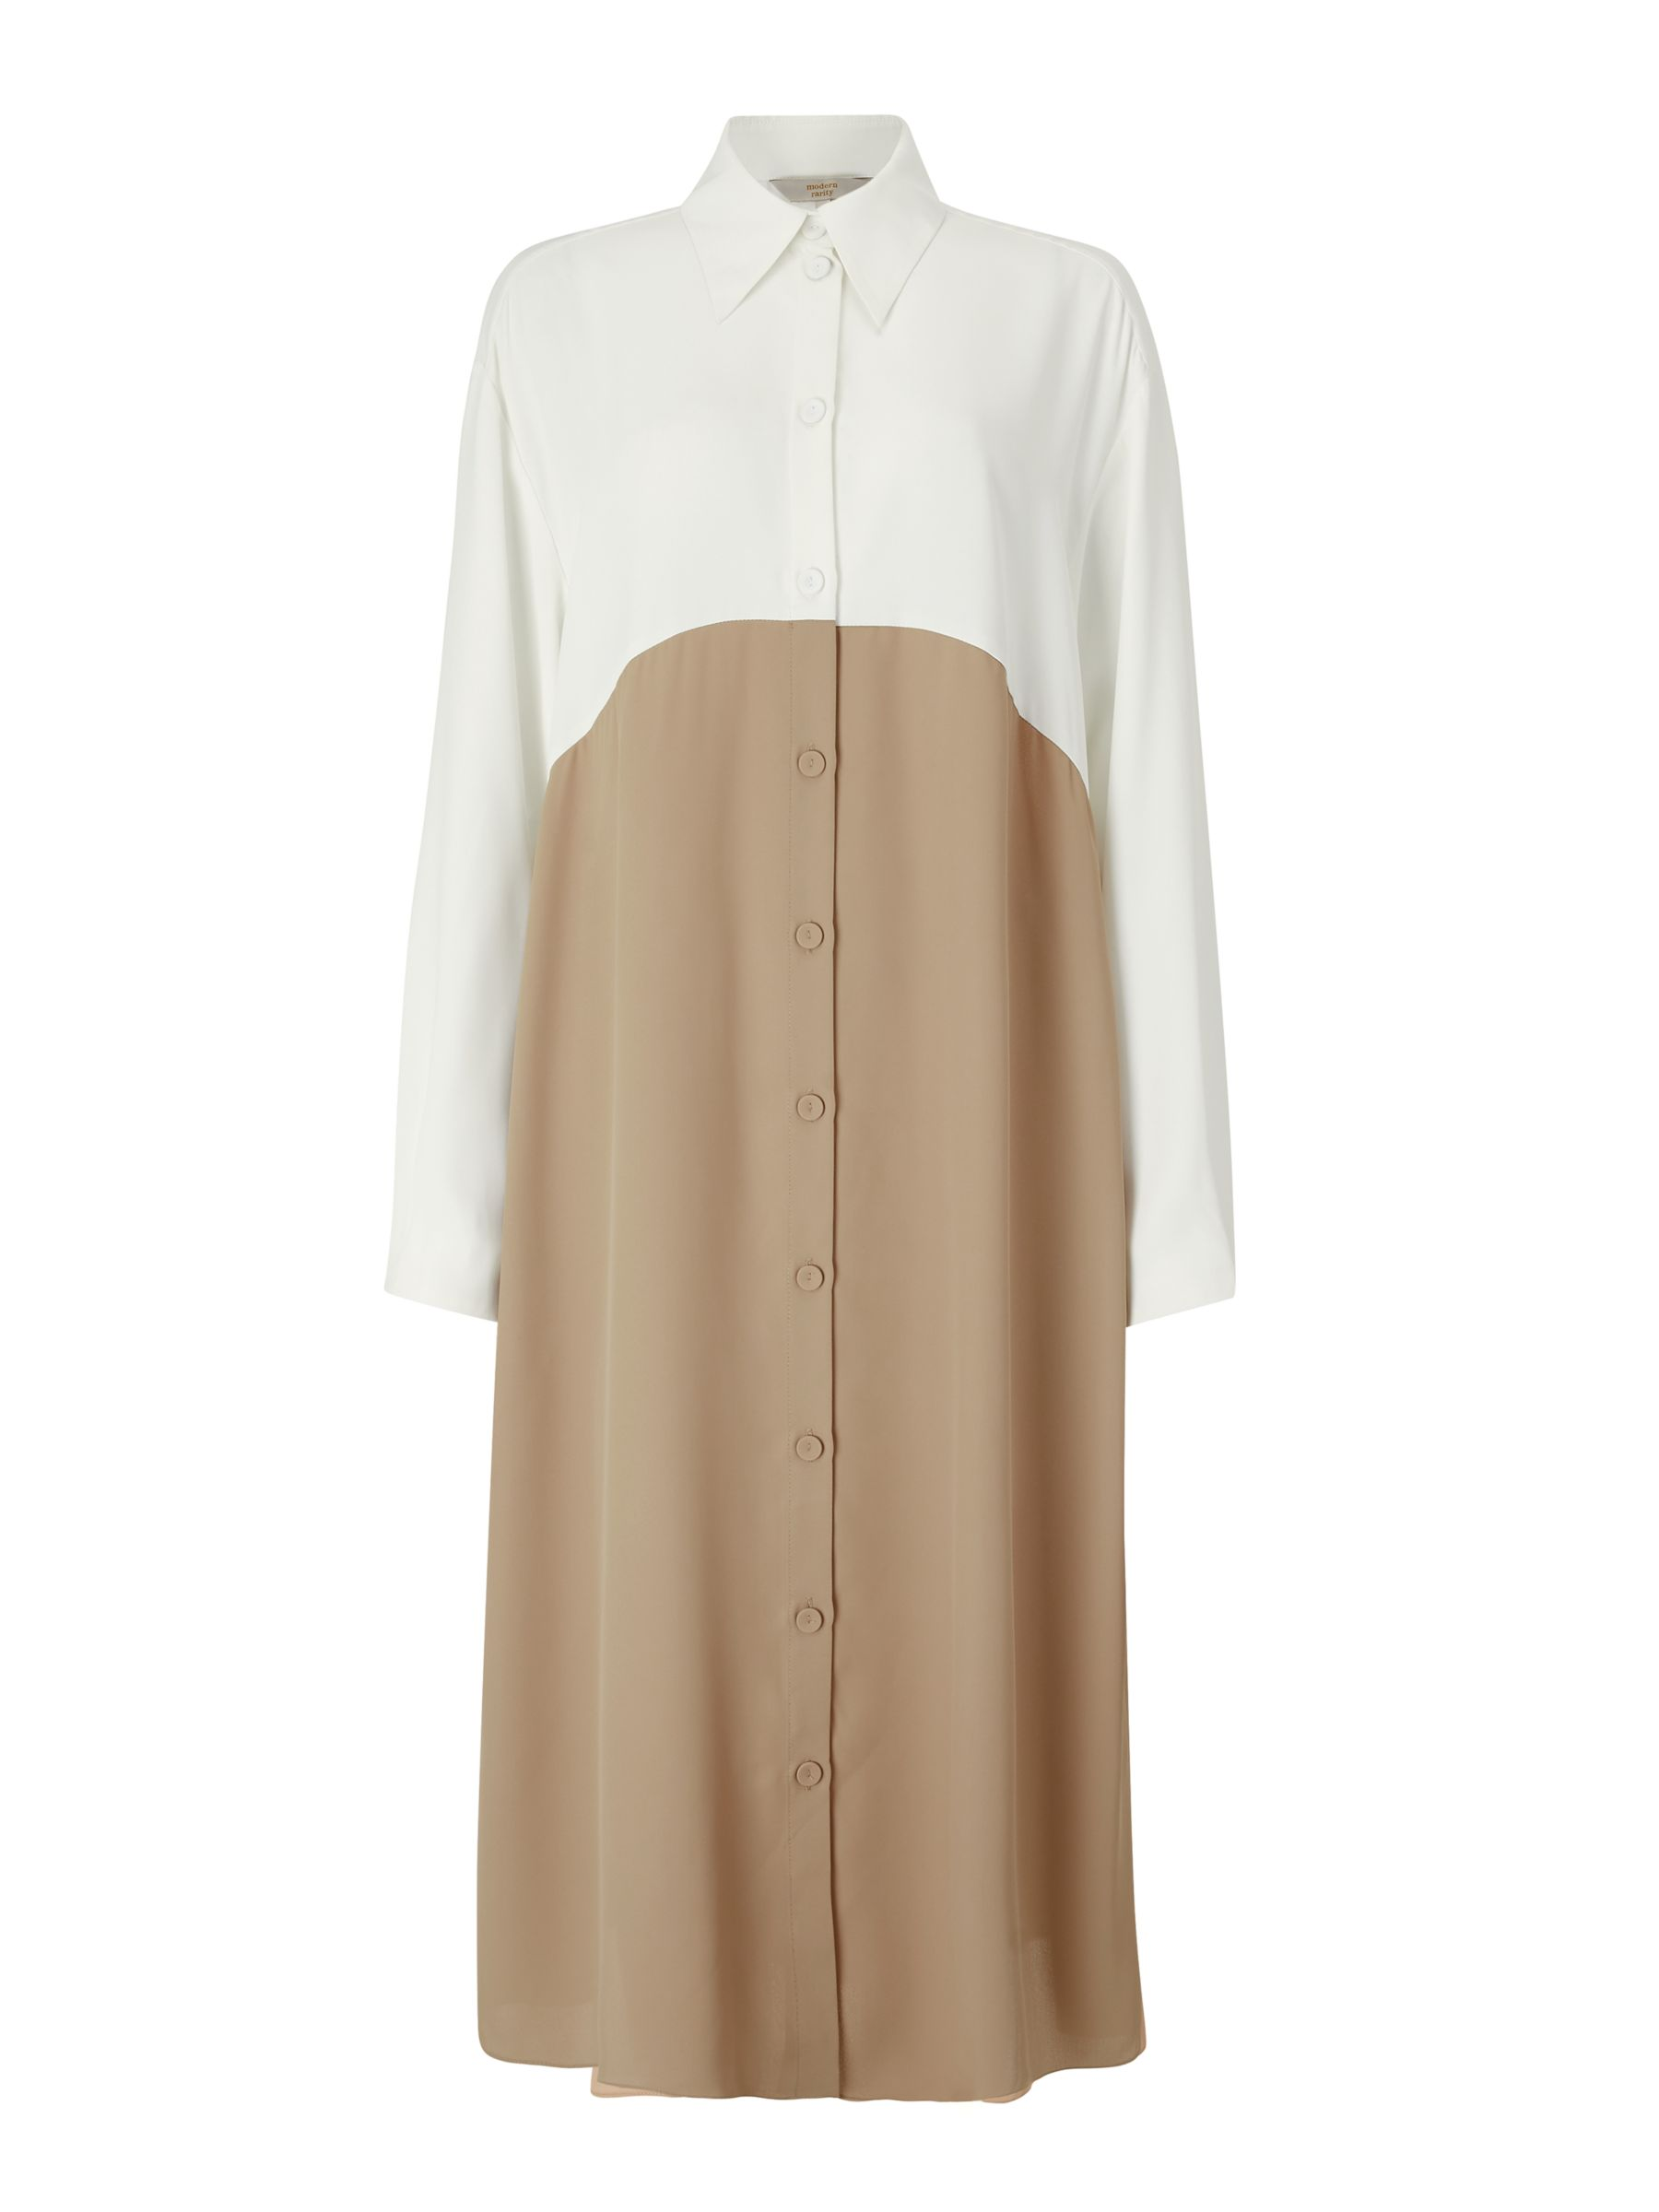 BuyModern Rarity J. JS Lee Midi Shirt Dress, Natural, 8 Online at johnlewis.com